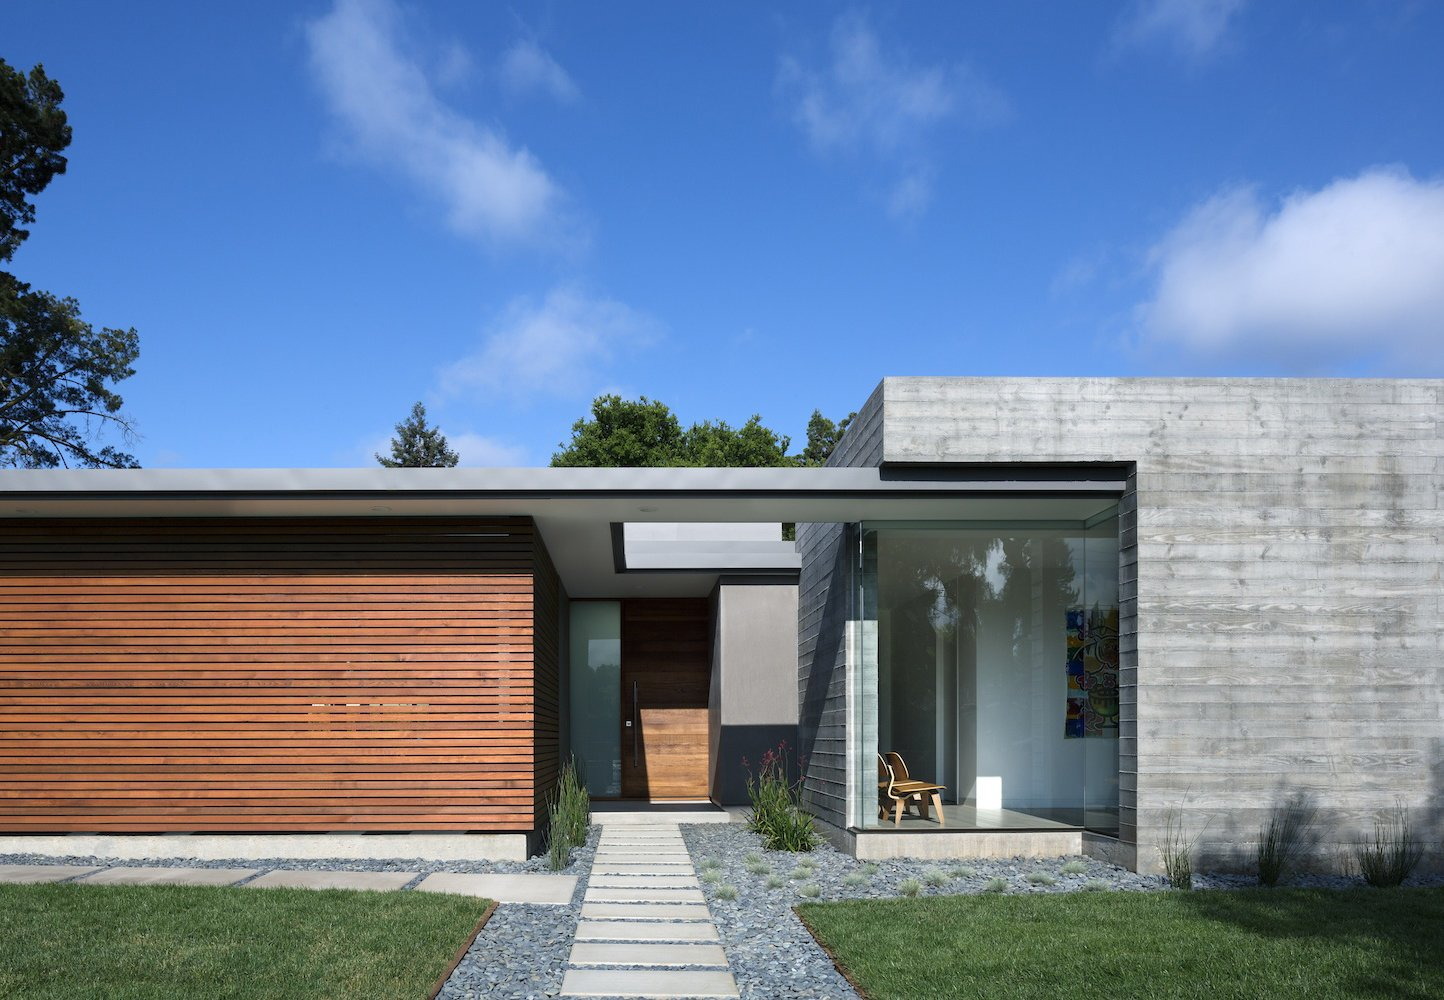 Located in Los Altos, California, Curt Cline's modern house seeks to respect the neighborhood fabric. By keeping the abode low-slung, using a few simple geometries, and the leaving the facade spare, Cline helped the structure blend in with the 1940s and 1950s structures around it. The materials—board-formed concrete and cedar slats—instill a contemporary California aesthetic.  Concrete Obsessed